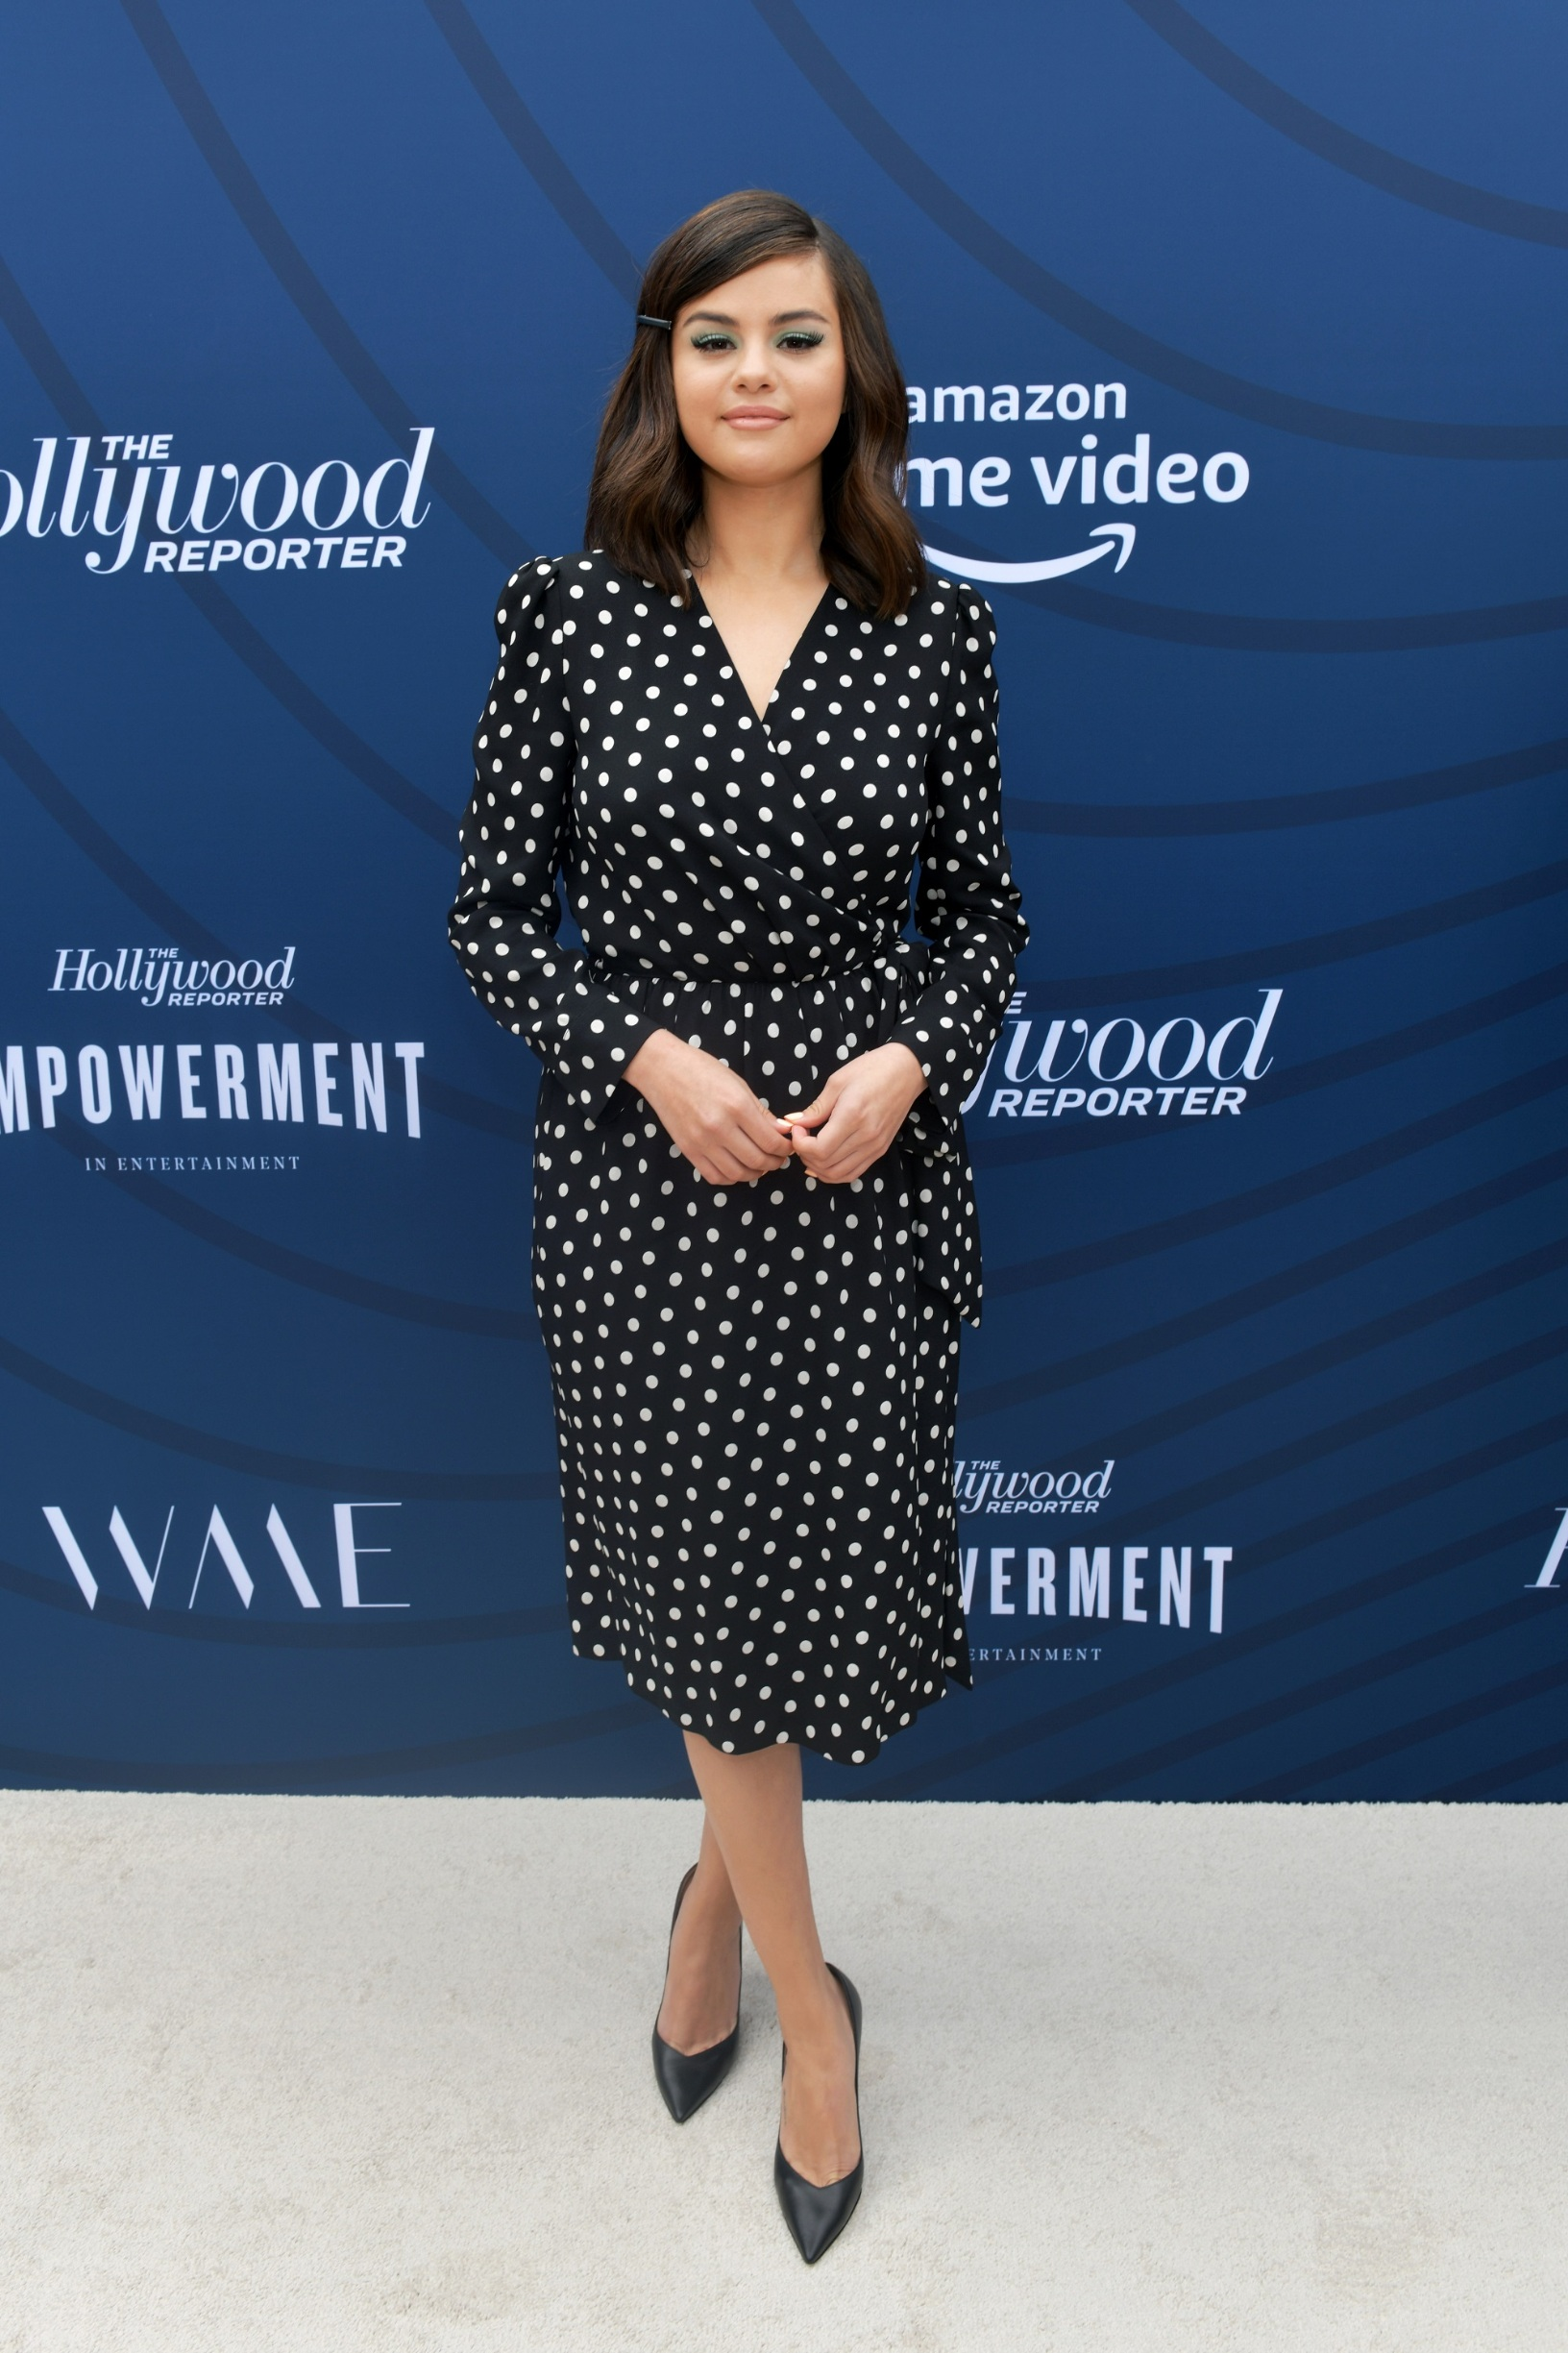 HOLLYWOOD, CALIFORNIA - APRIL 30: Selena Gomez attends The Hollywood Reporter's Empowerment In Entertainment Event 2019 at Milk Studios on April 30, 2019 in Hollywood, California. (Photo by Rodin Eckenroth/Getty Images)